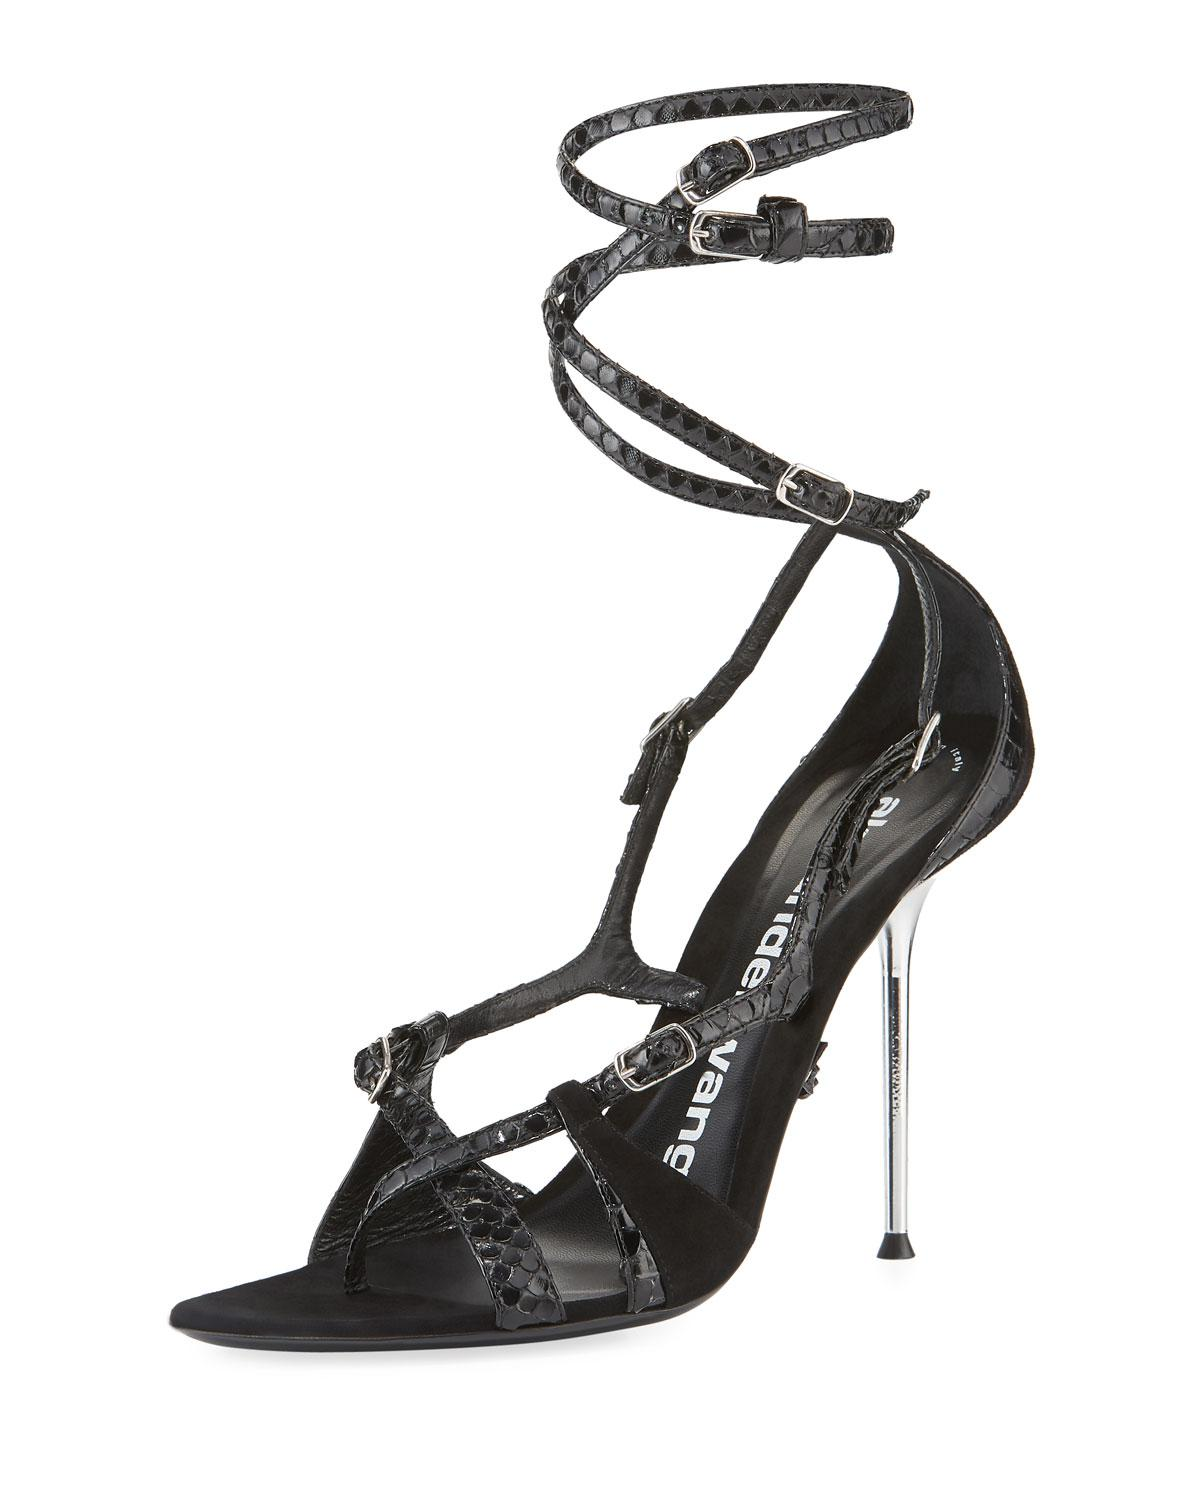 6e14196b56a Lyst - Alexander Wang Kiely Strappy Snake-print Leather-suede Ankle ...